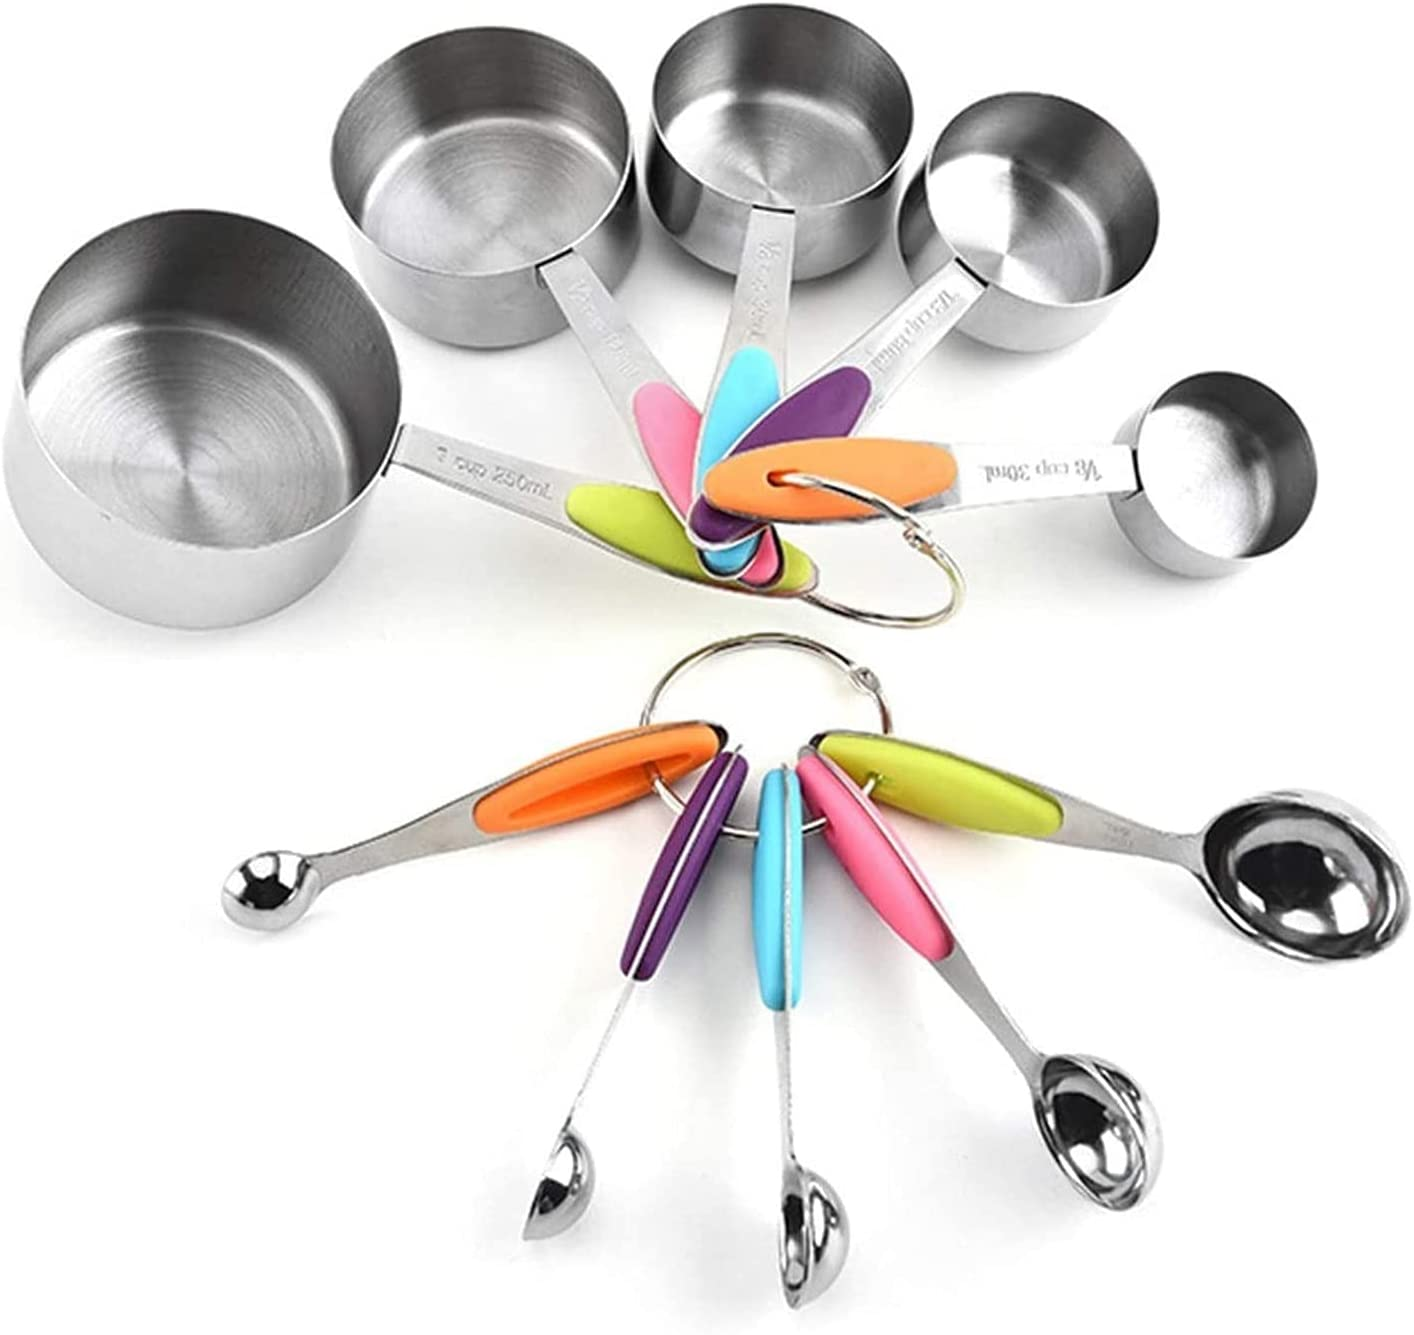 DJDLLZY Set of Manufacturer regenerated product 10 Stainless Steel Heavy M sold out Spoons Measuring Duty